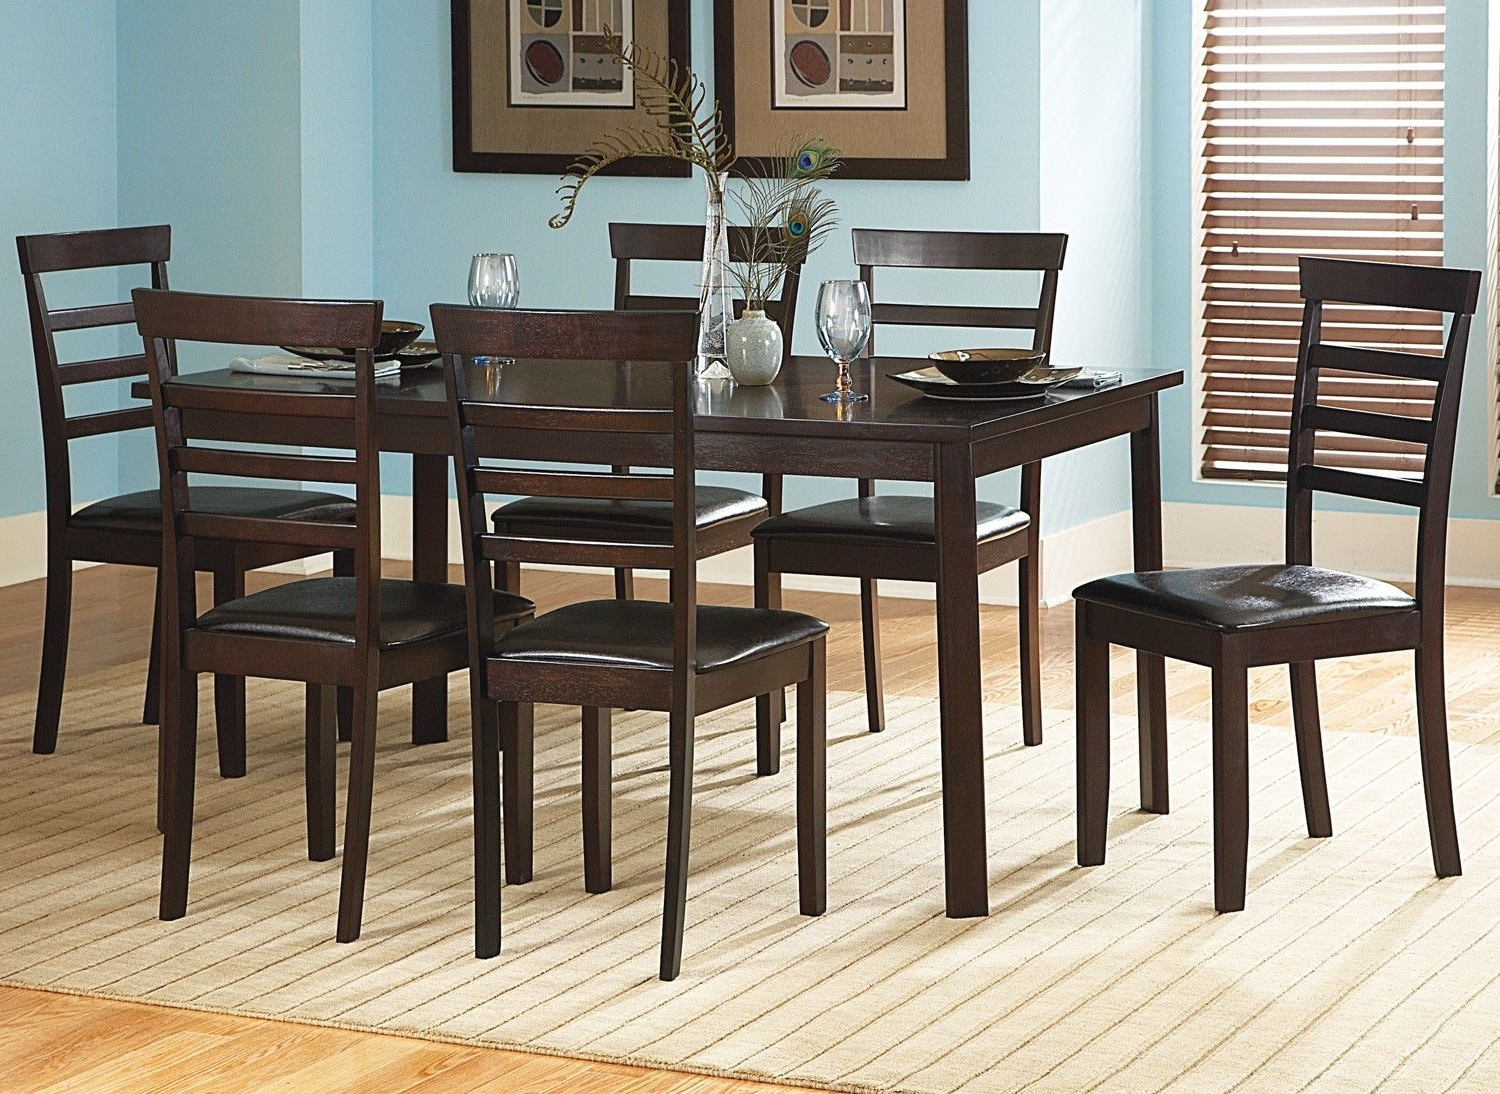 Famous Victoria Casual Dining 7 Pc (View 12 of 25)